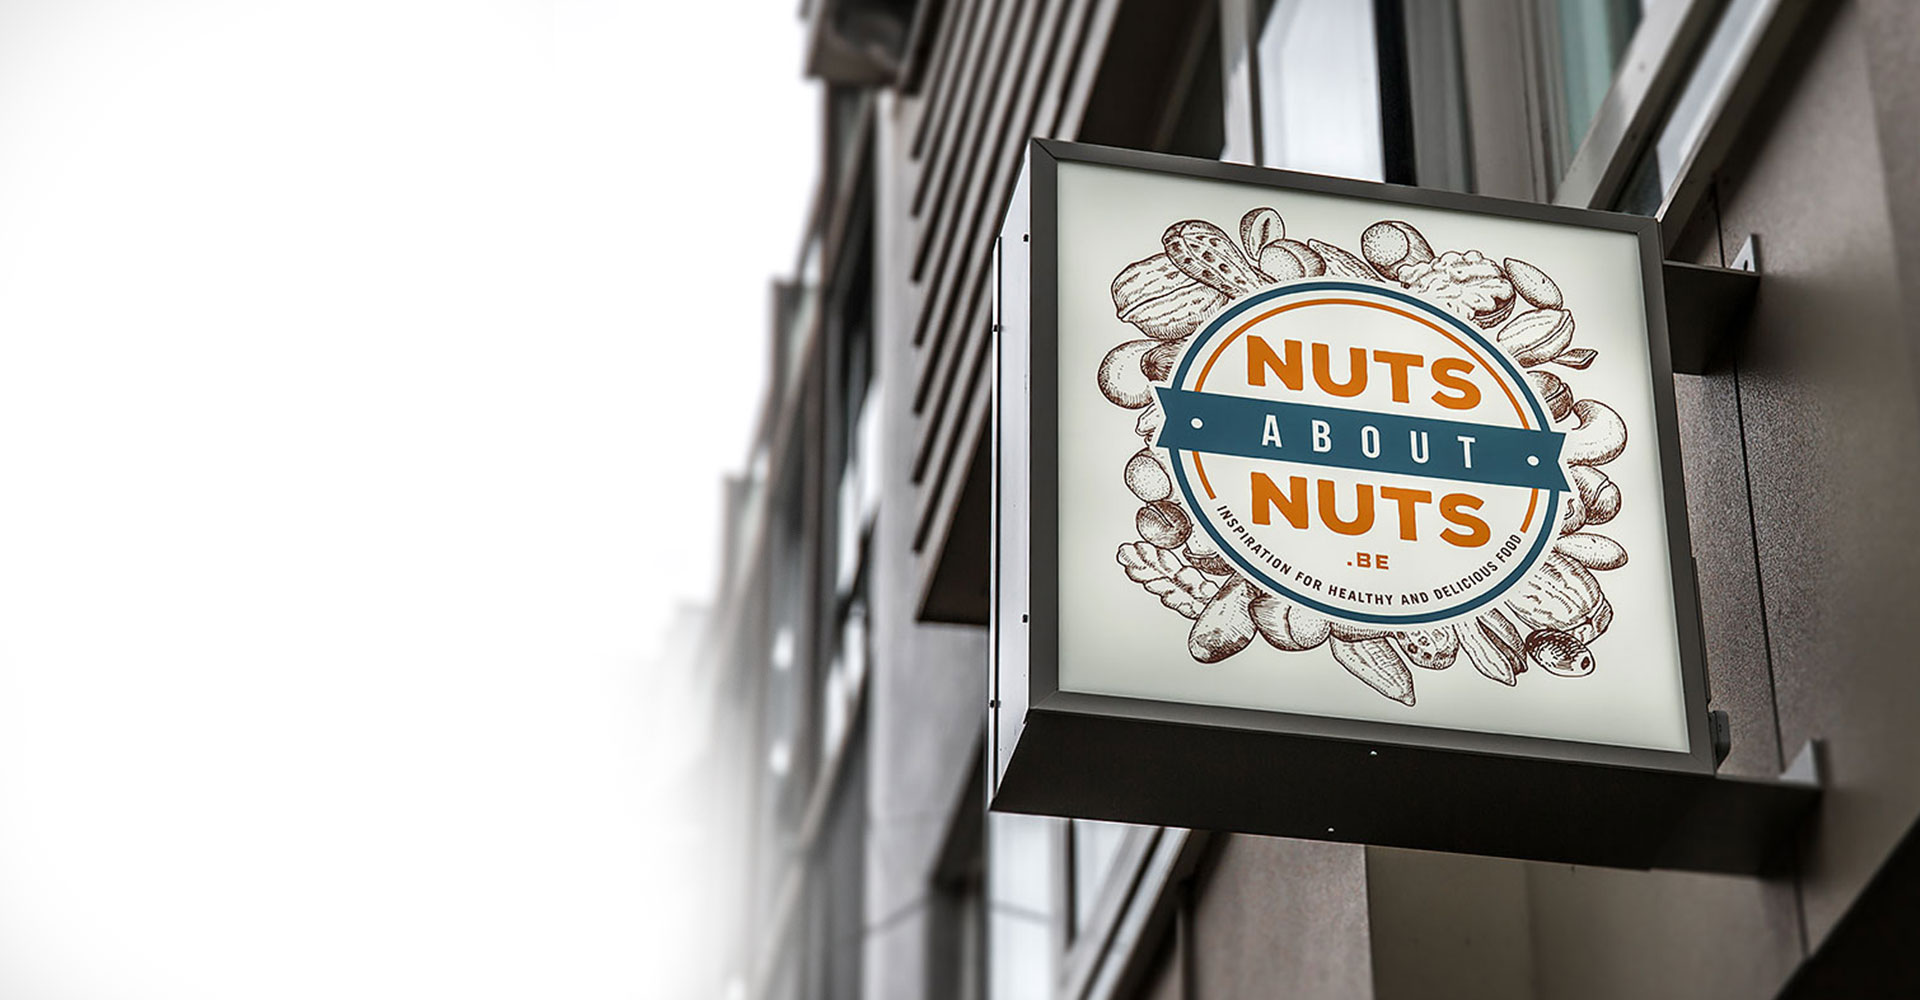 Nuts about Nuts Hasselt